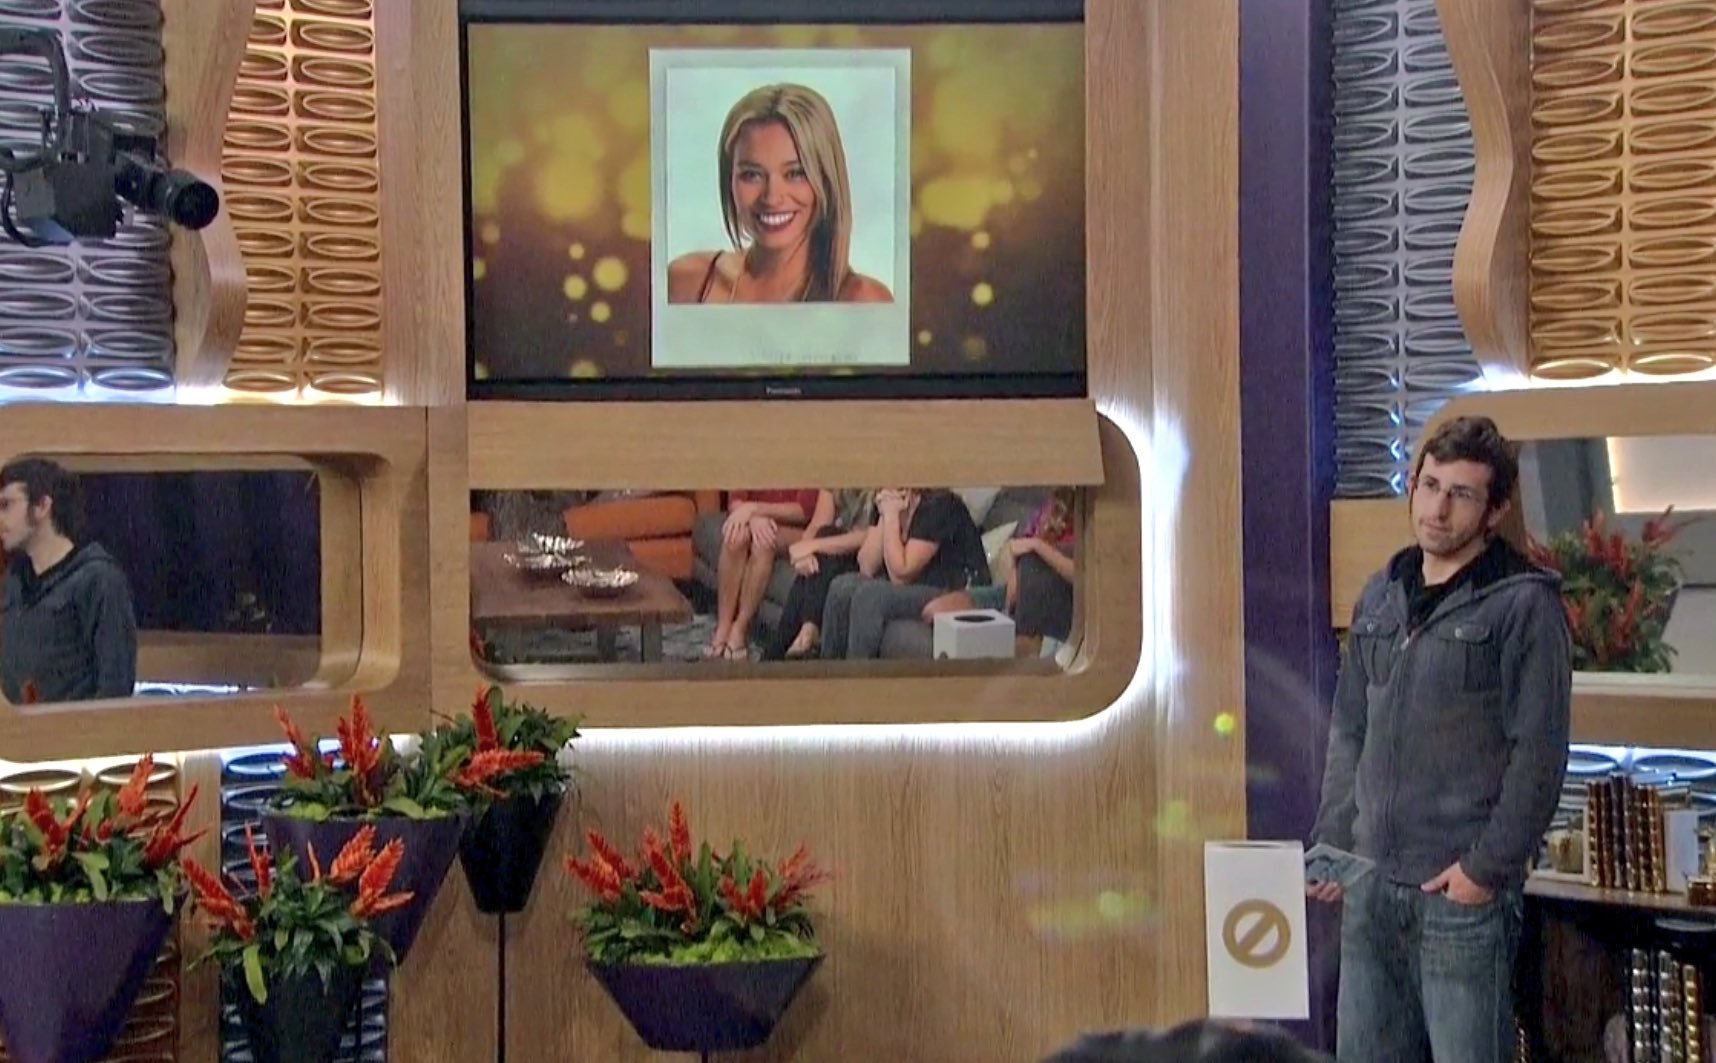 Big Brother Over the Top Week 3 America's nomination